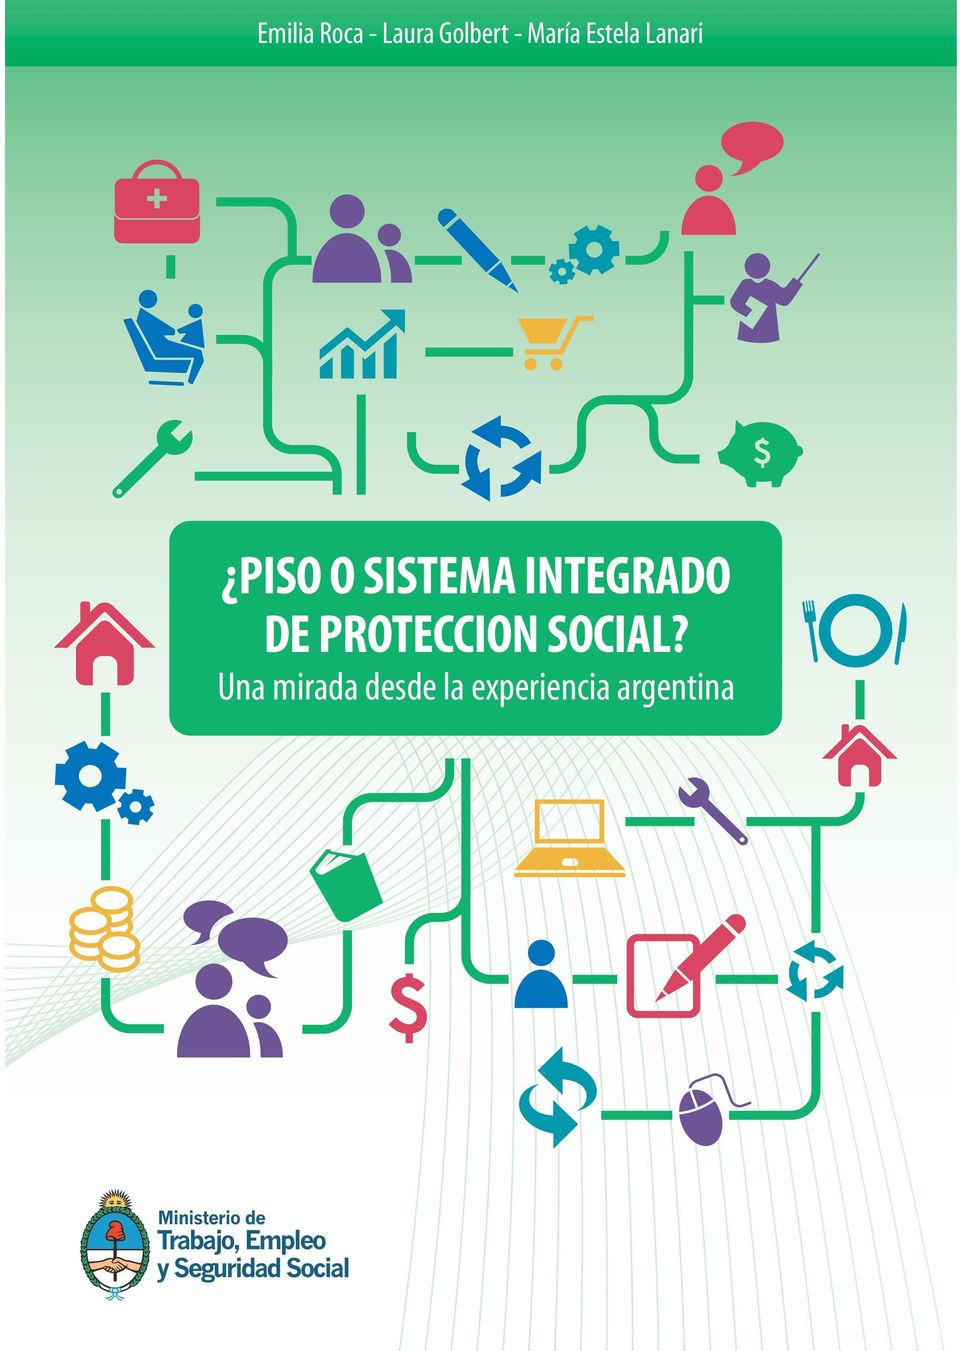 INTEGRADO DE PROTECCION SOCIAL?